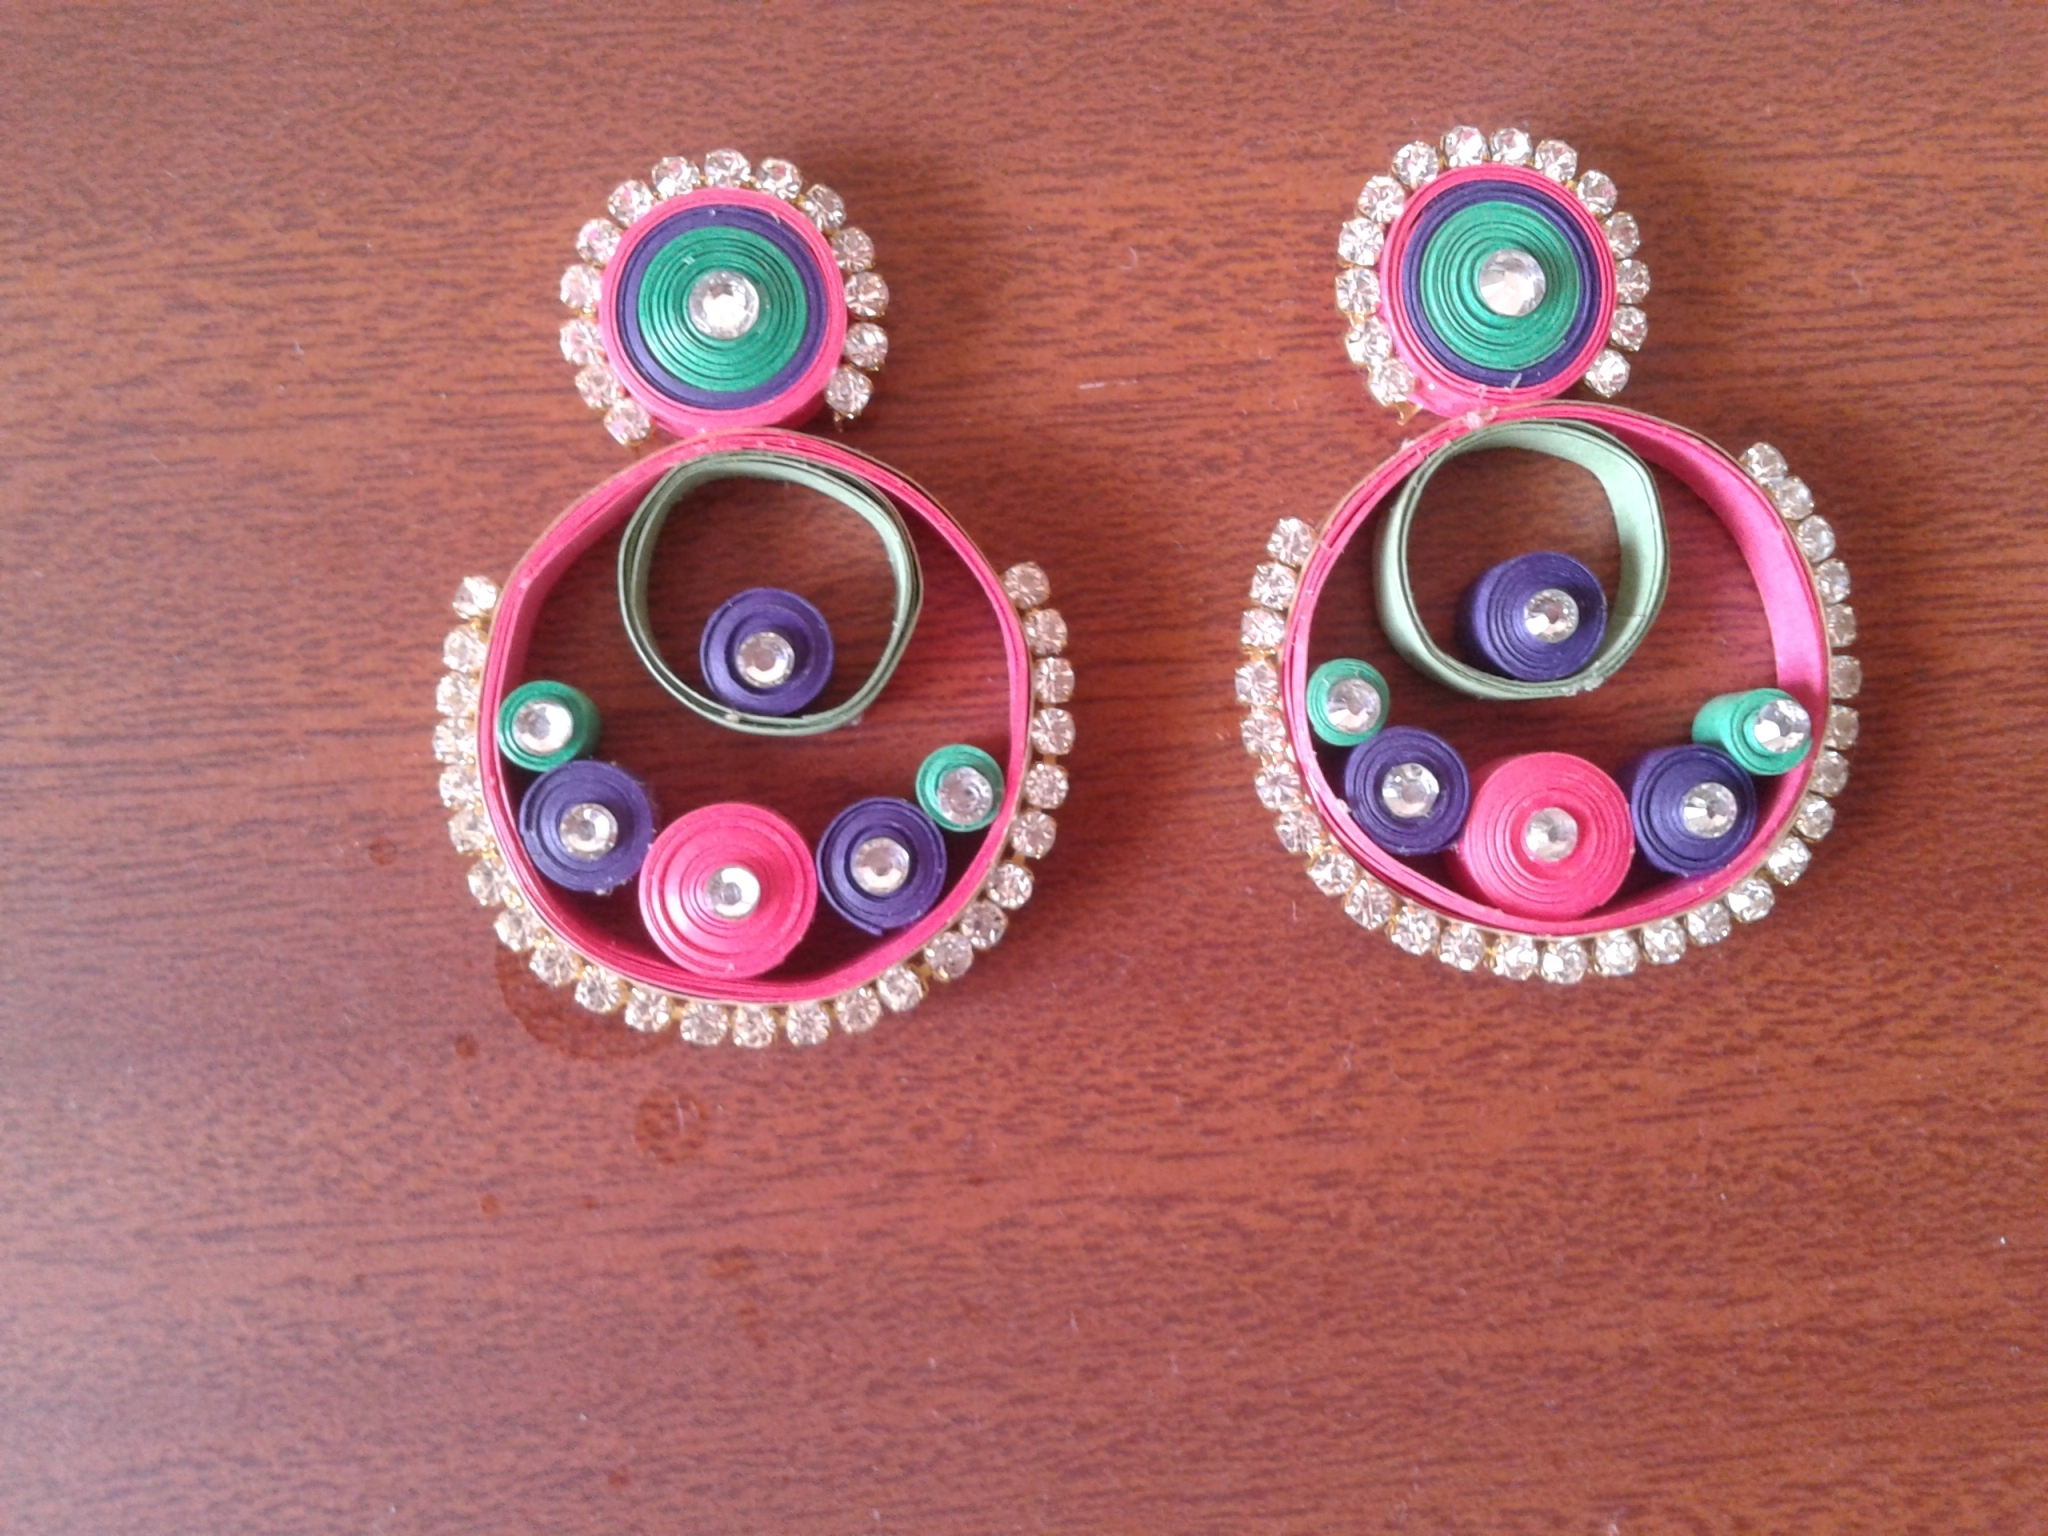 Quilling Earrings More Designs : 1000+ images about quilling. 1 on Pinterest